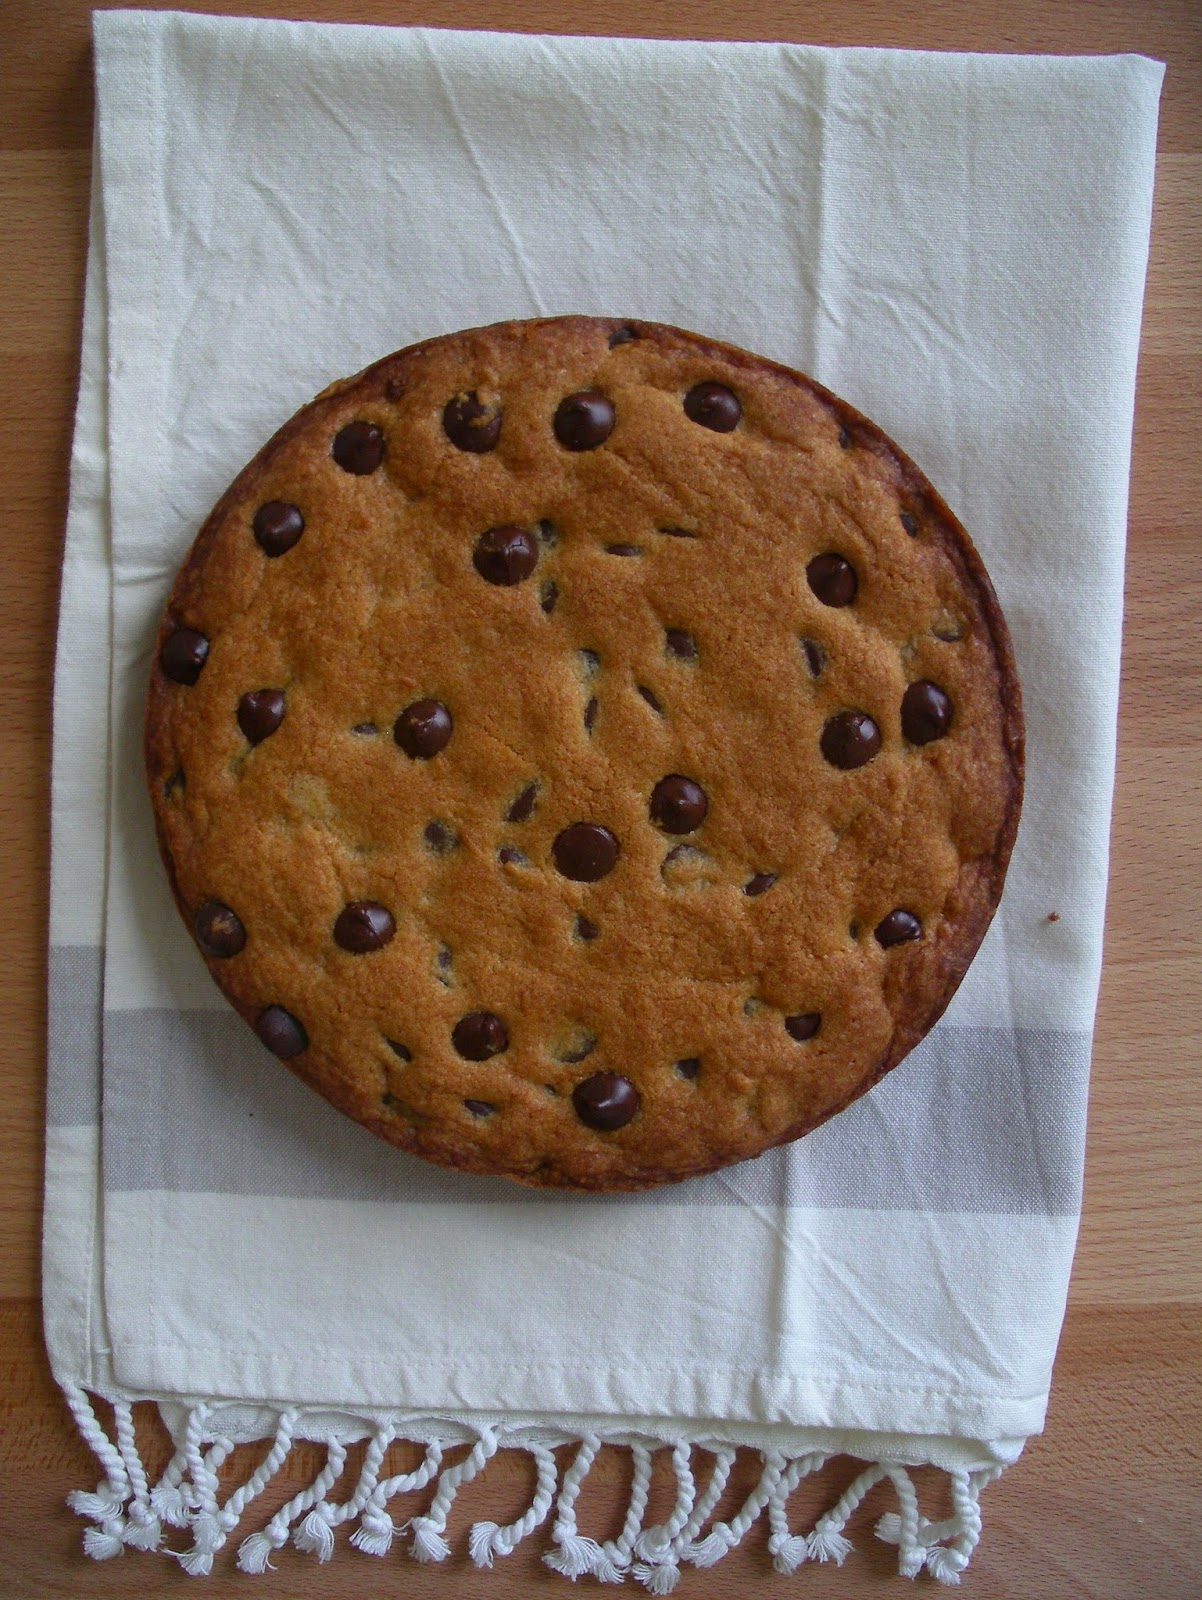 KITCHEN IN THE SAND: Chocolate chip cookie-cake